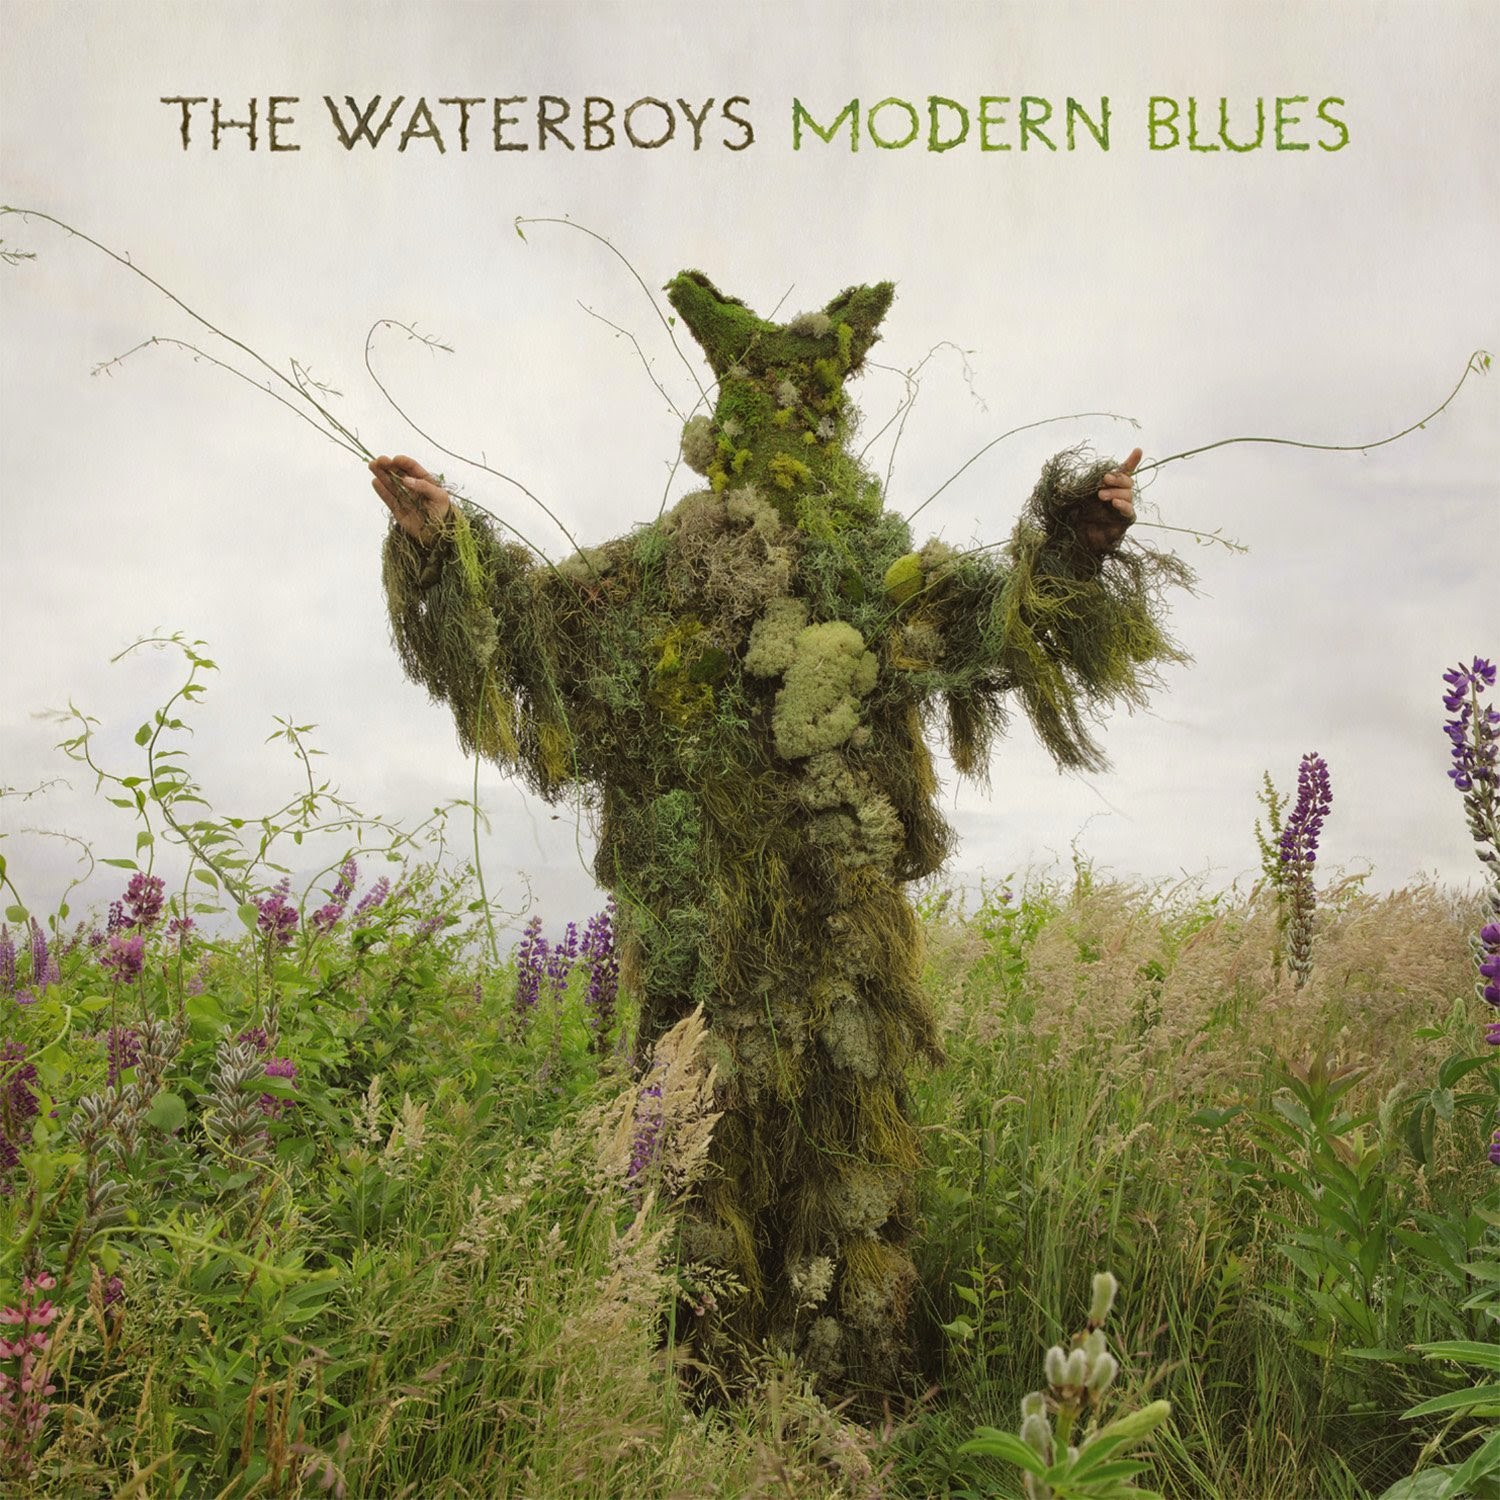 The Waterboys' Modern Blues